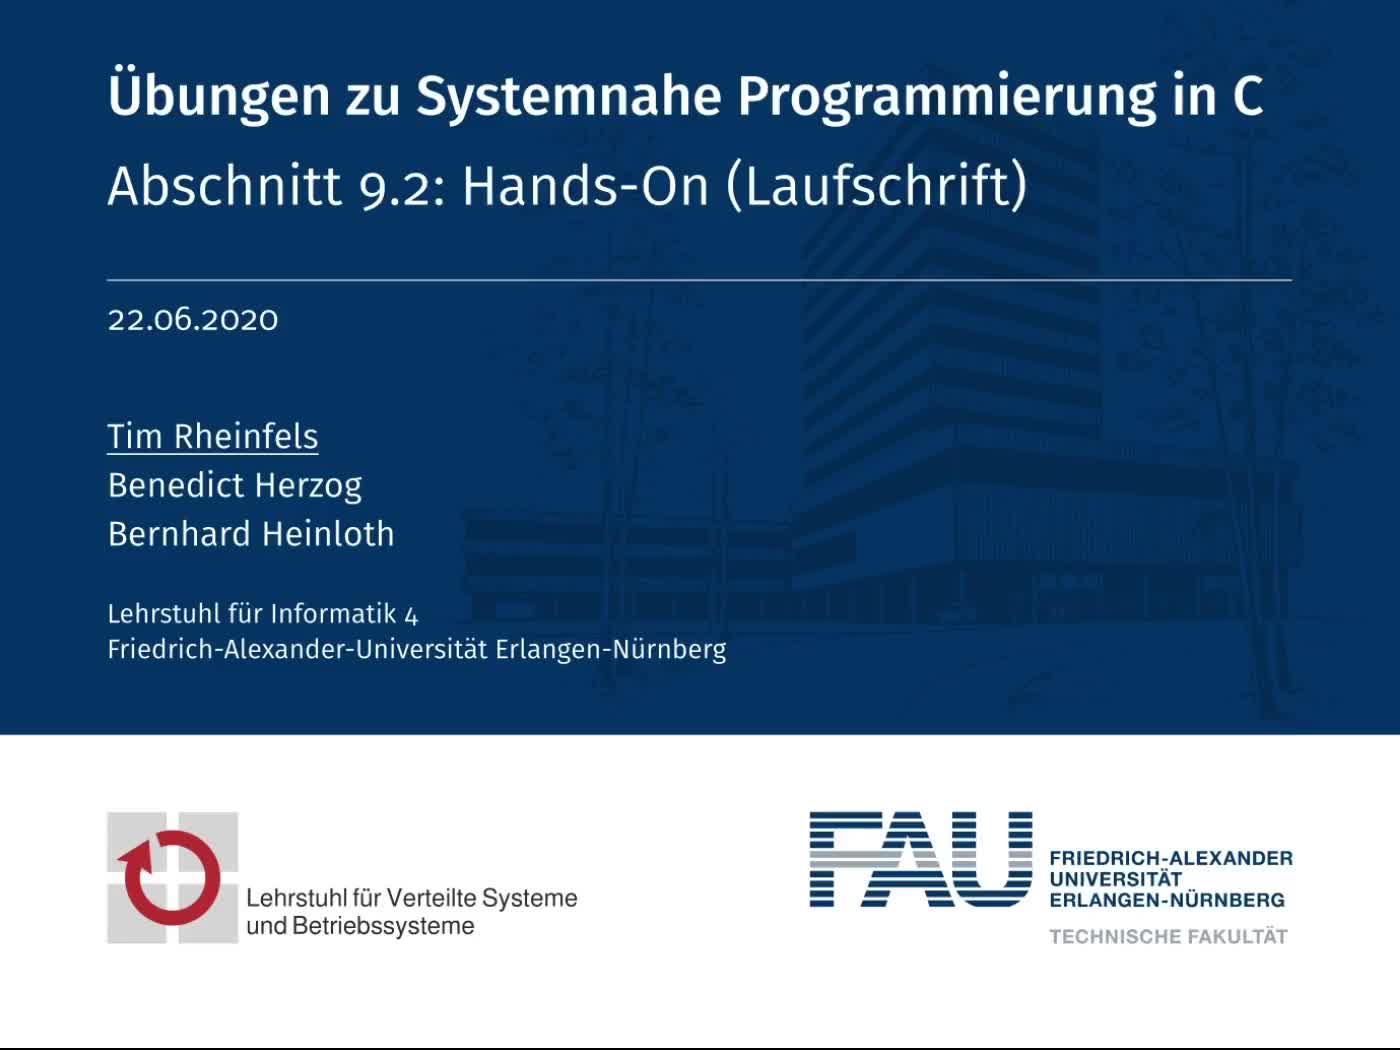 09.2: Hands-On (Laufschrift) preview image